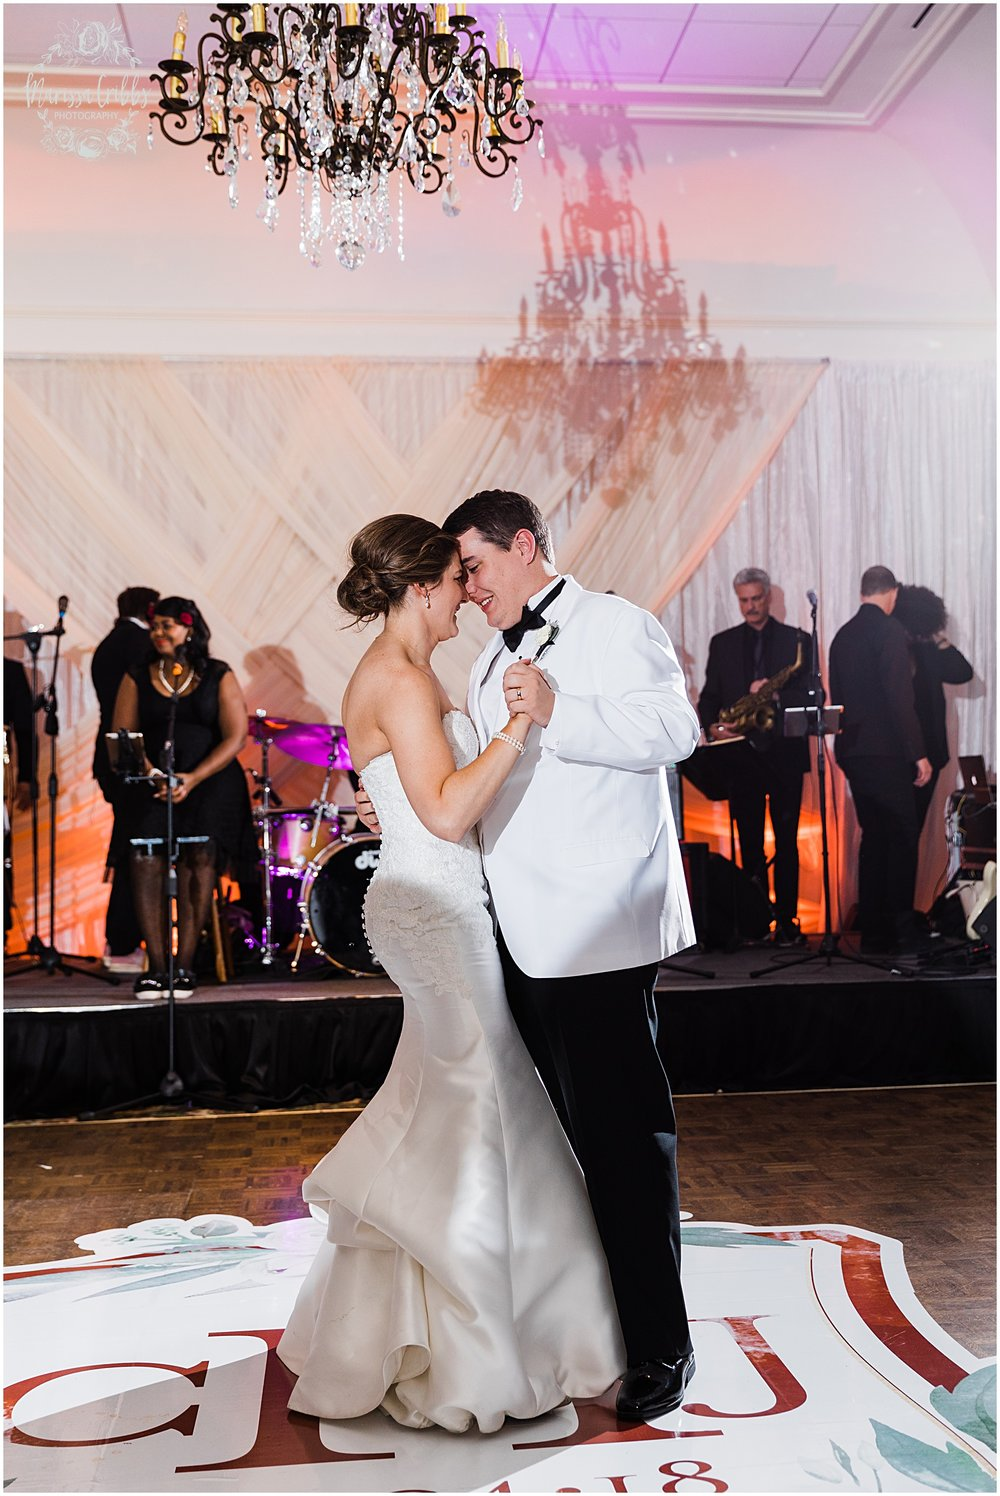 JOE & CAROLINE MARRIED | INDIAN HILLS COUNTRY CLUB | MARISSA CRIBBS PHOTOGRAPHY_7286.jpg